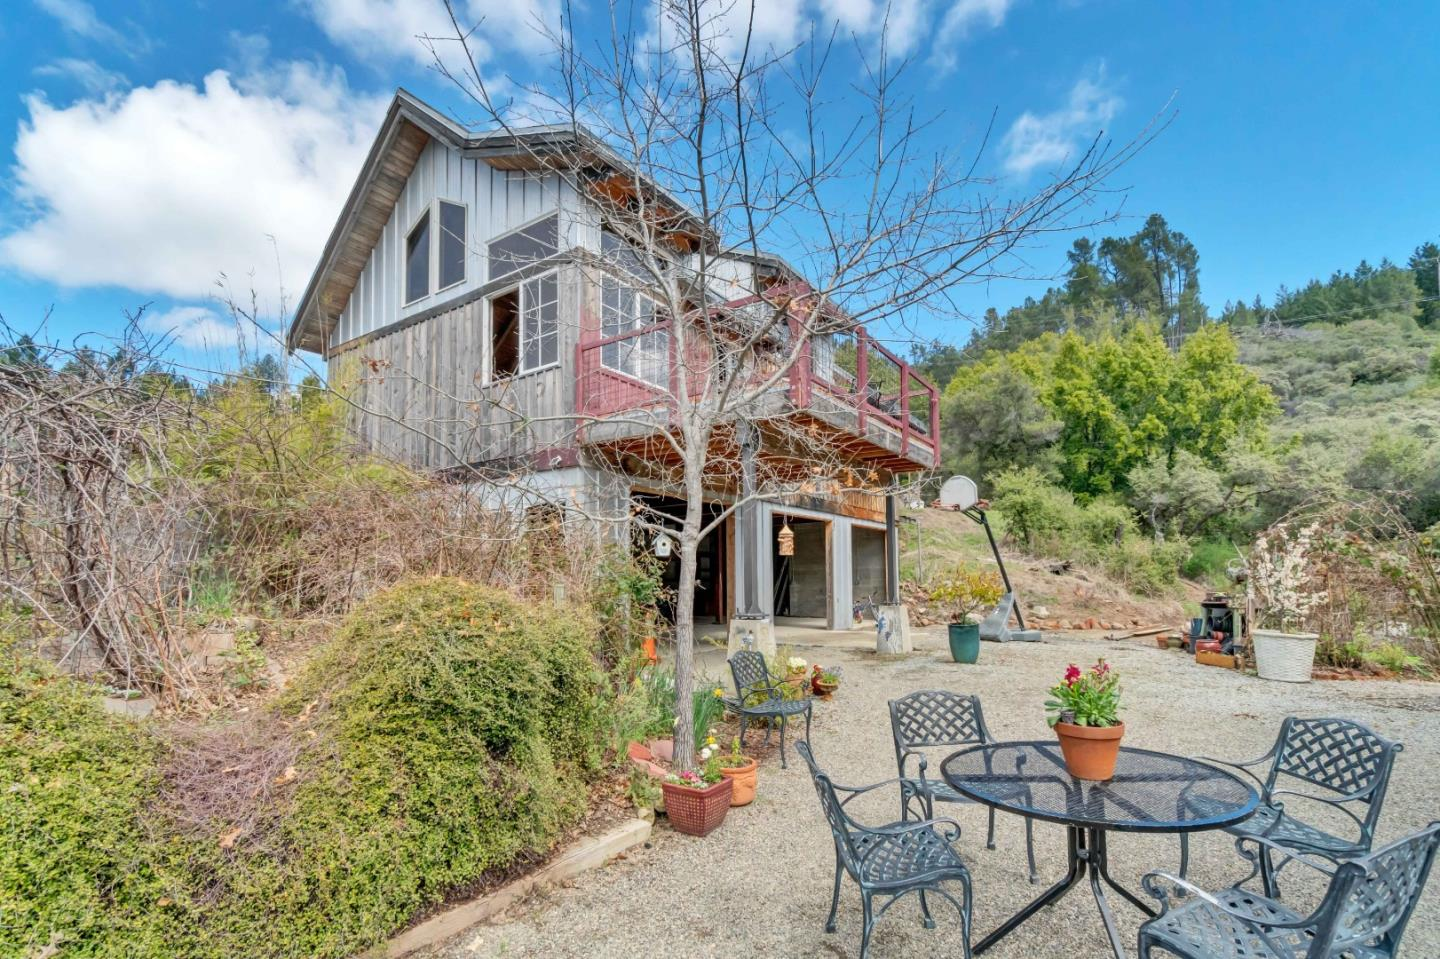 Welcome to paradise, 25 minutes from Los Gatos! Possible owner financing available, special use zones.  Over 77 acres of ocean view opportunity located in the Santa Cruz mountains.  Surrounded by several other mountain vineyards, an abundance of mature fruit trees and beautiful gardens and within walking distance to the Loma Prieta Winery. Room for 4000+ sqft property and harvest-able lumber galore!  3 permitted structures, current guest house almost 75% complete with permits and includes hydronic heating, vaulted ceilings, ocean views, etc. Over 2 miles of cut out hiking or biking trails that back up to the famous Demonstration biking and hiking forest. Options: Winery, Air BB cash cow, solar income, water entity, horse camps, private family estate, retreat center, culinary school, health/spiritual center, spa and more.  Well produces over 100 gallons a minute of water flow and produced over 1 million gallons sold last year.